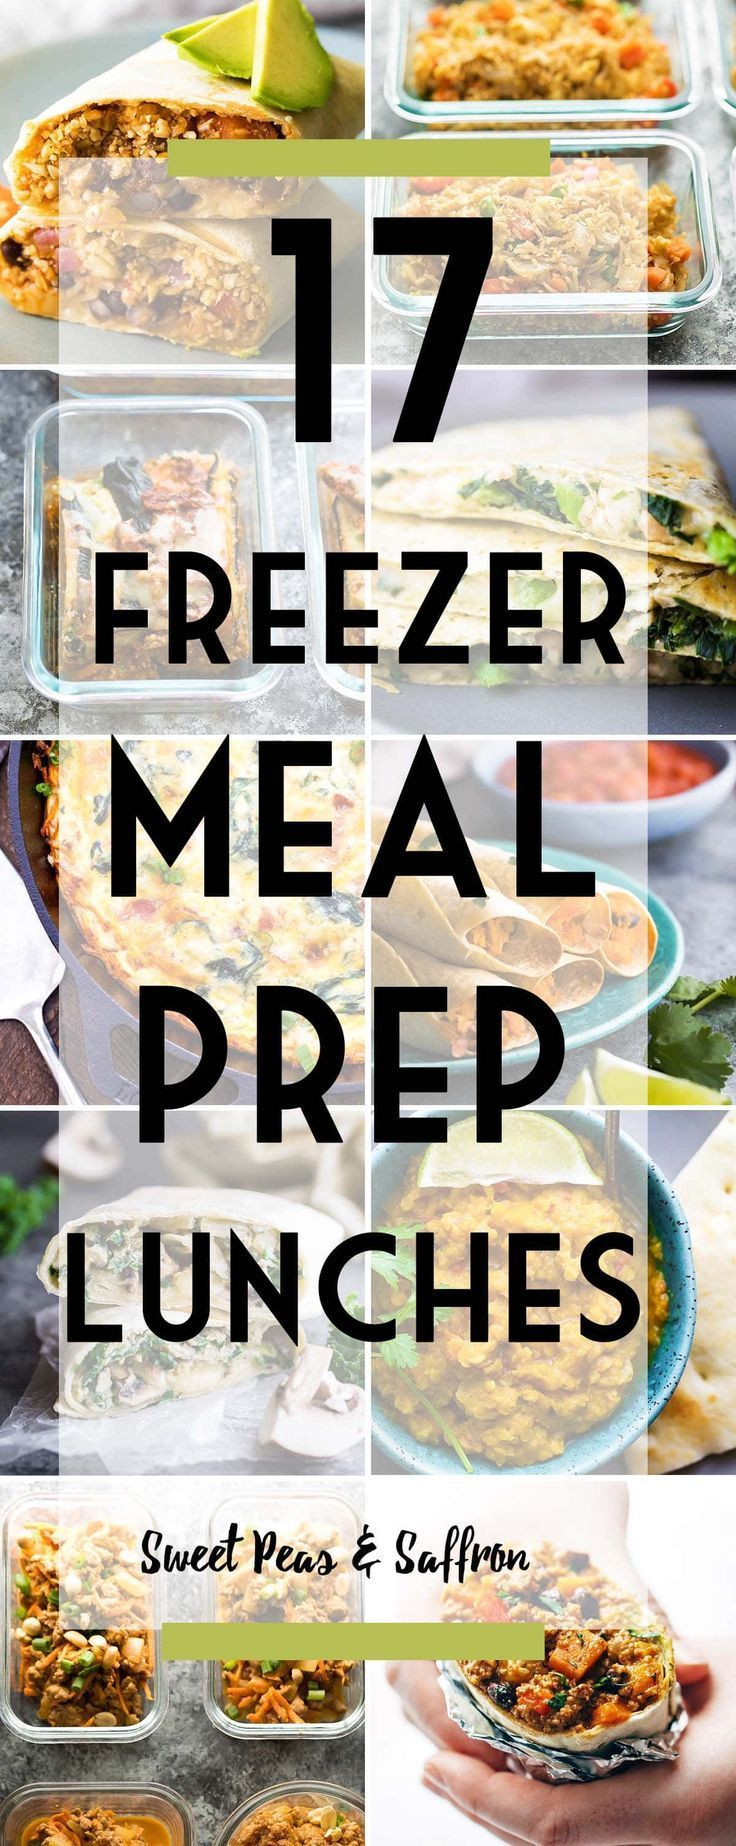 34 Freezer-Friendly Meal Prep Recipes